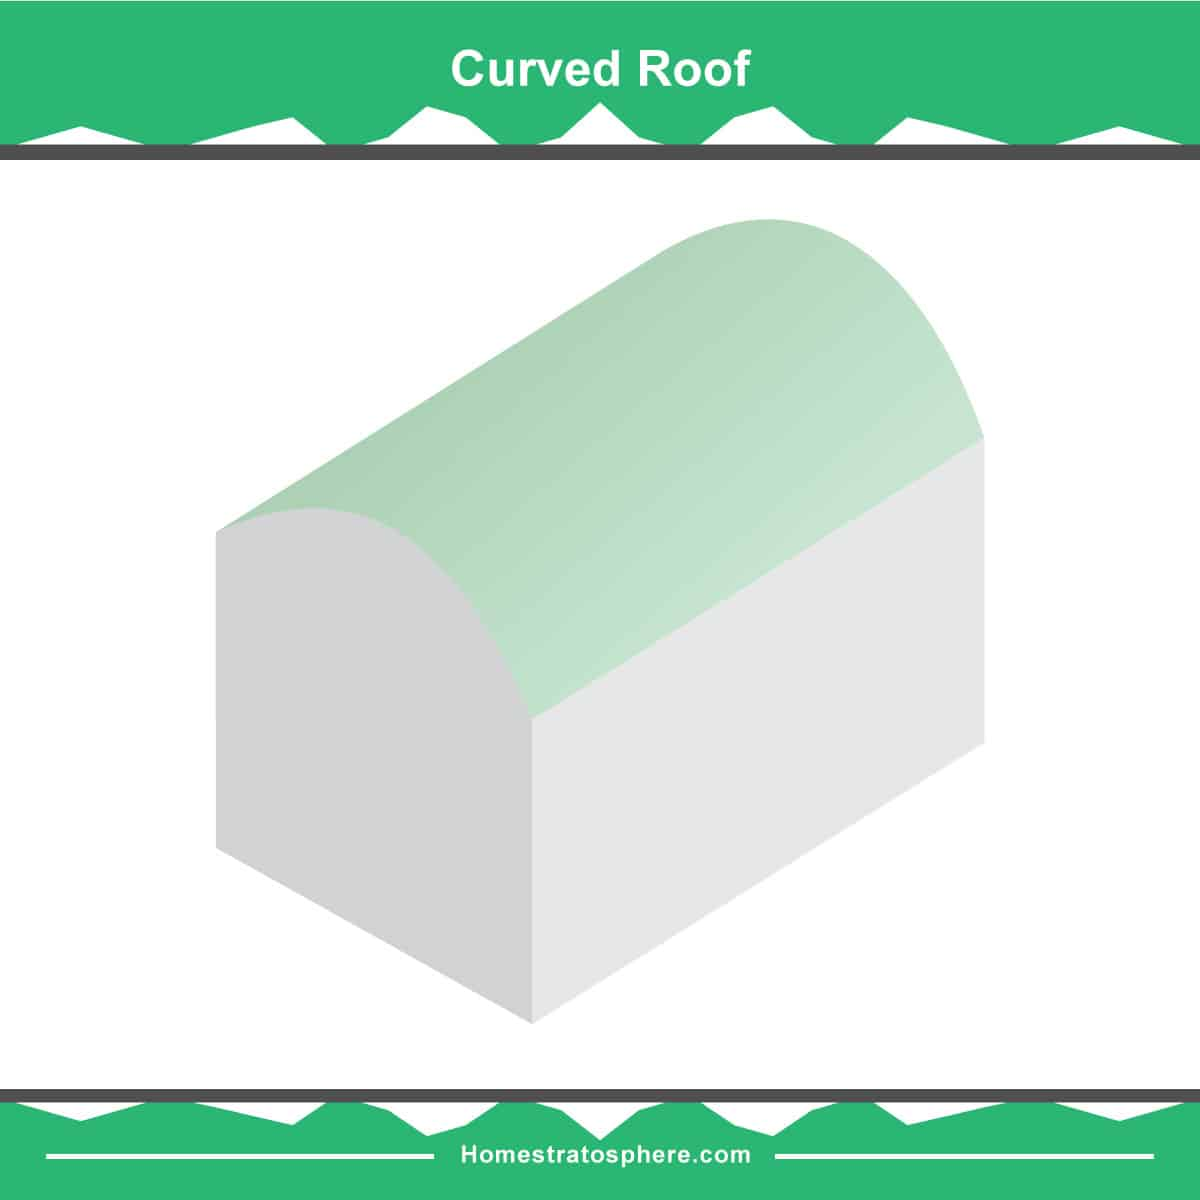 Curved roof diagram